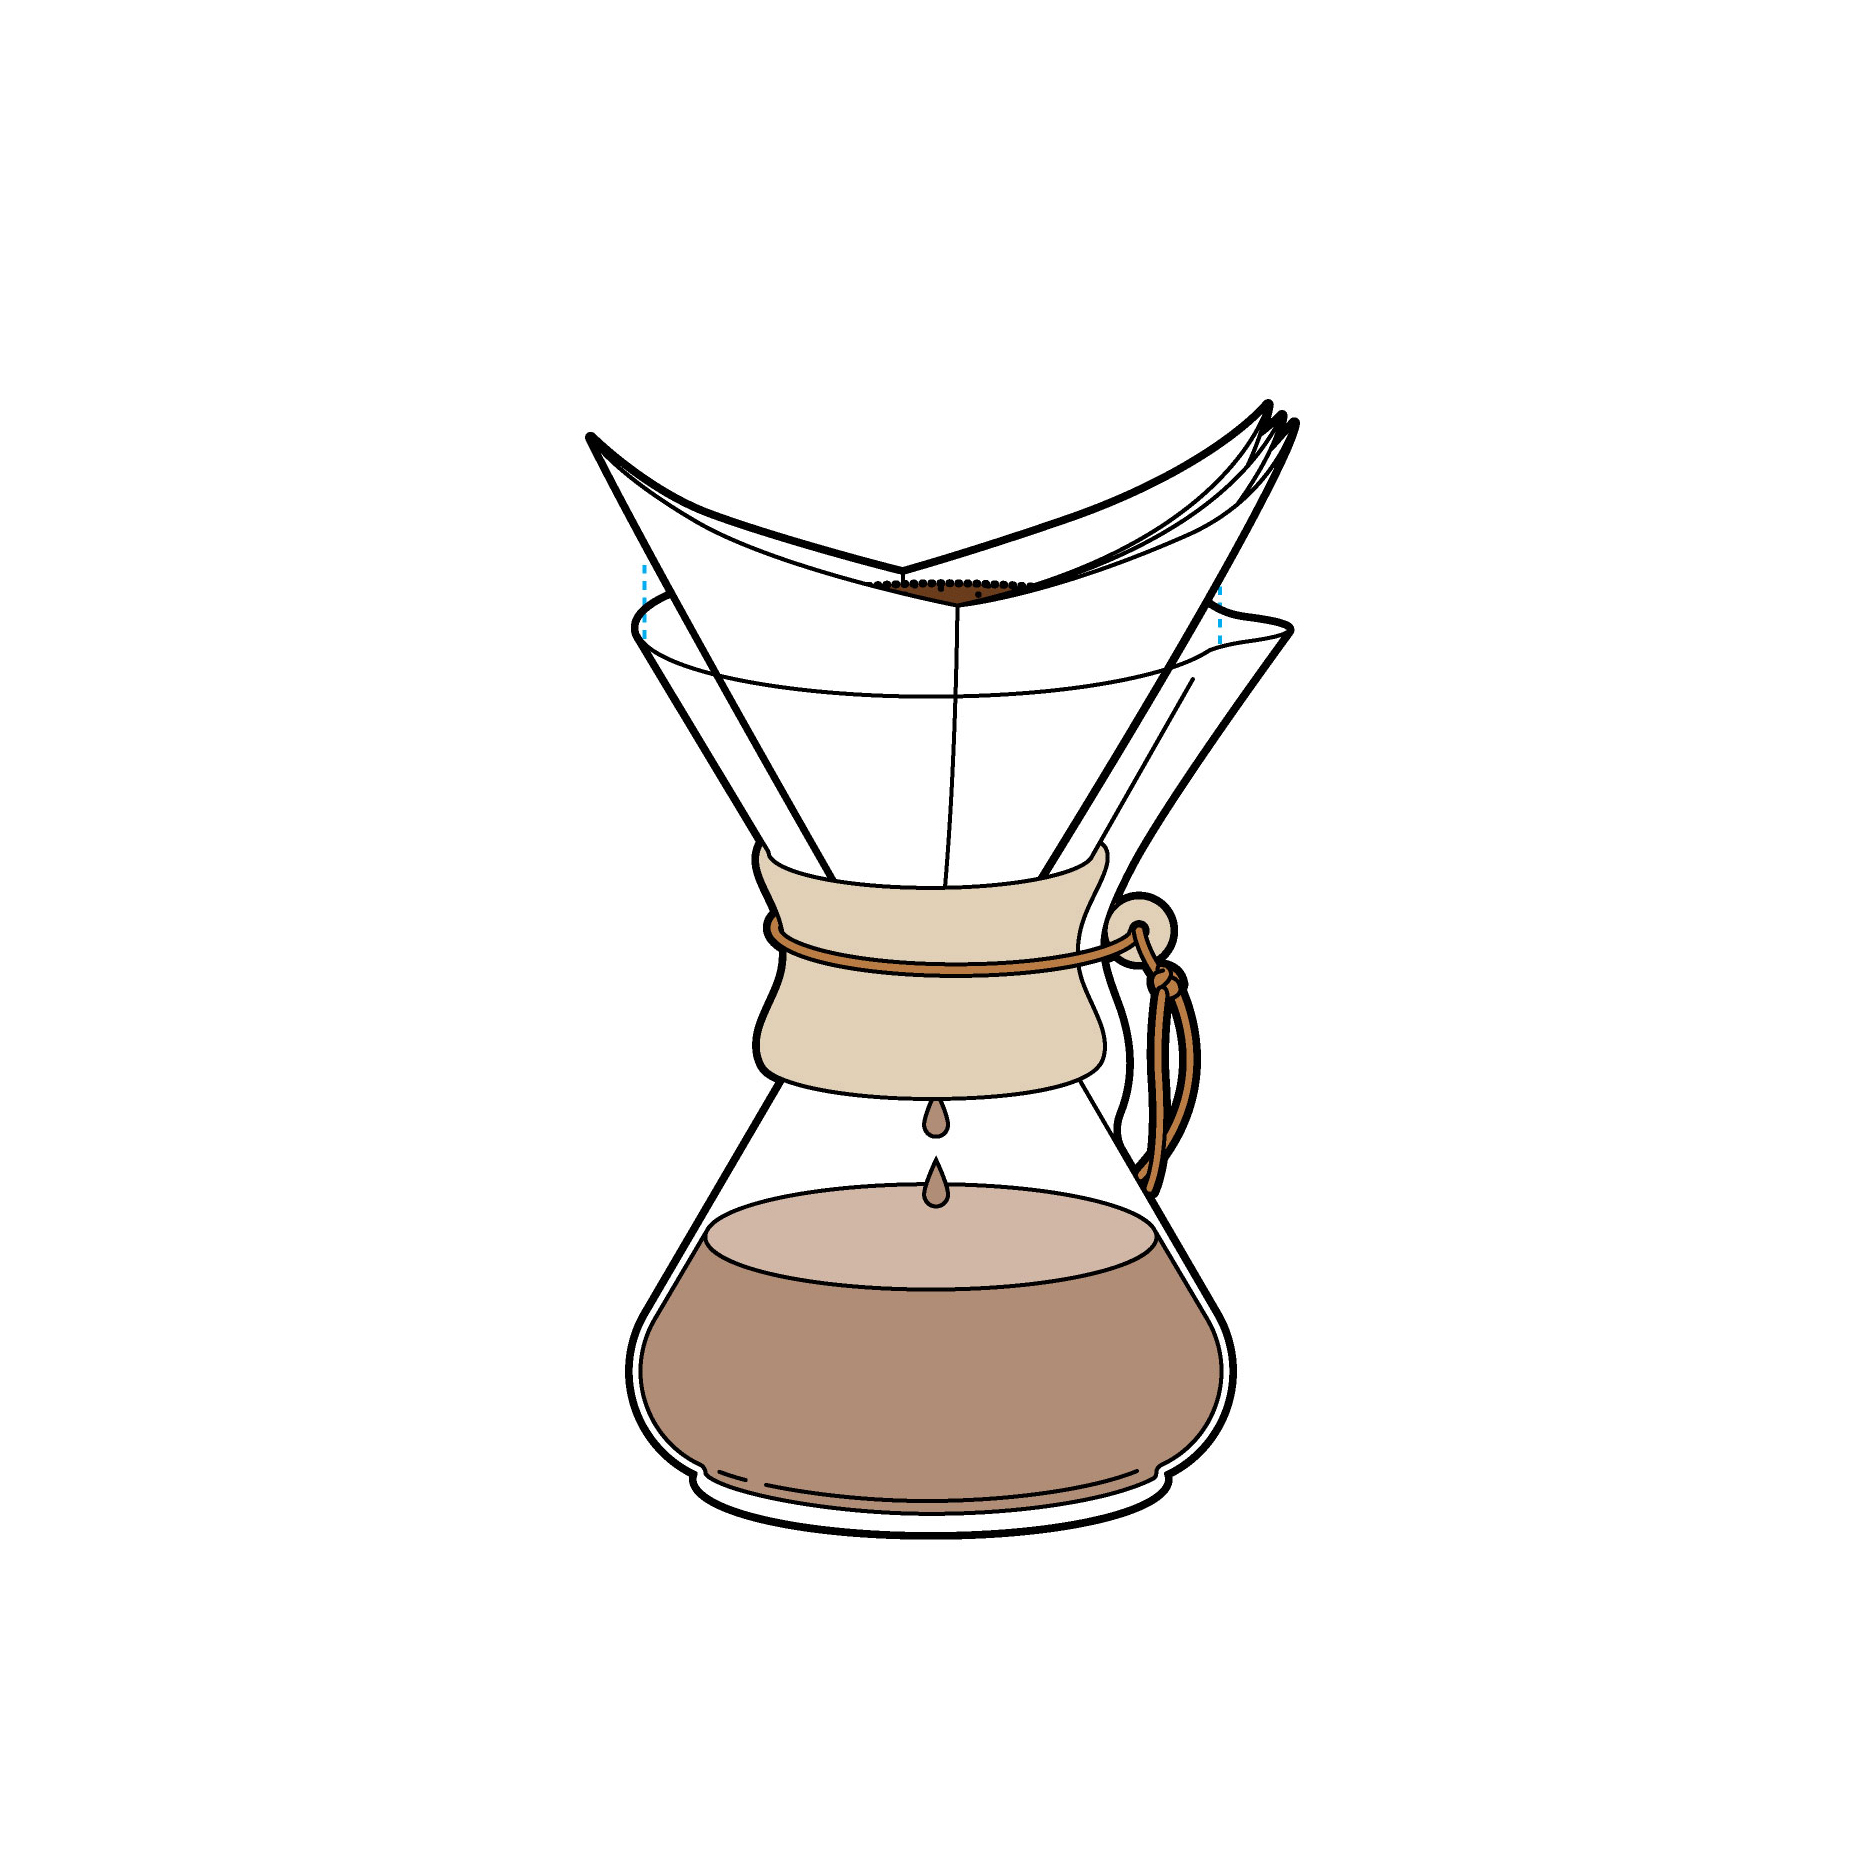 Chemex Brewed Coffee, Using a Paper Filter